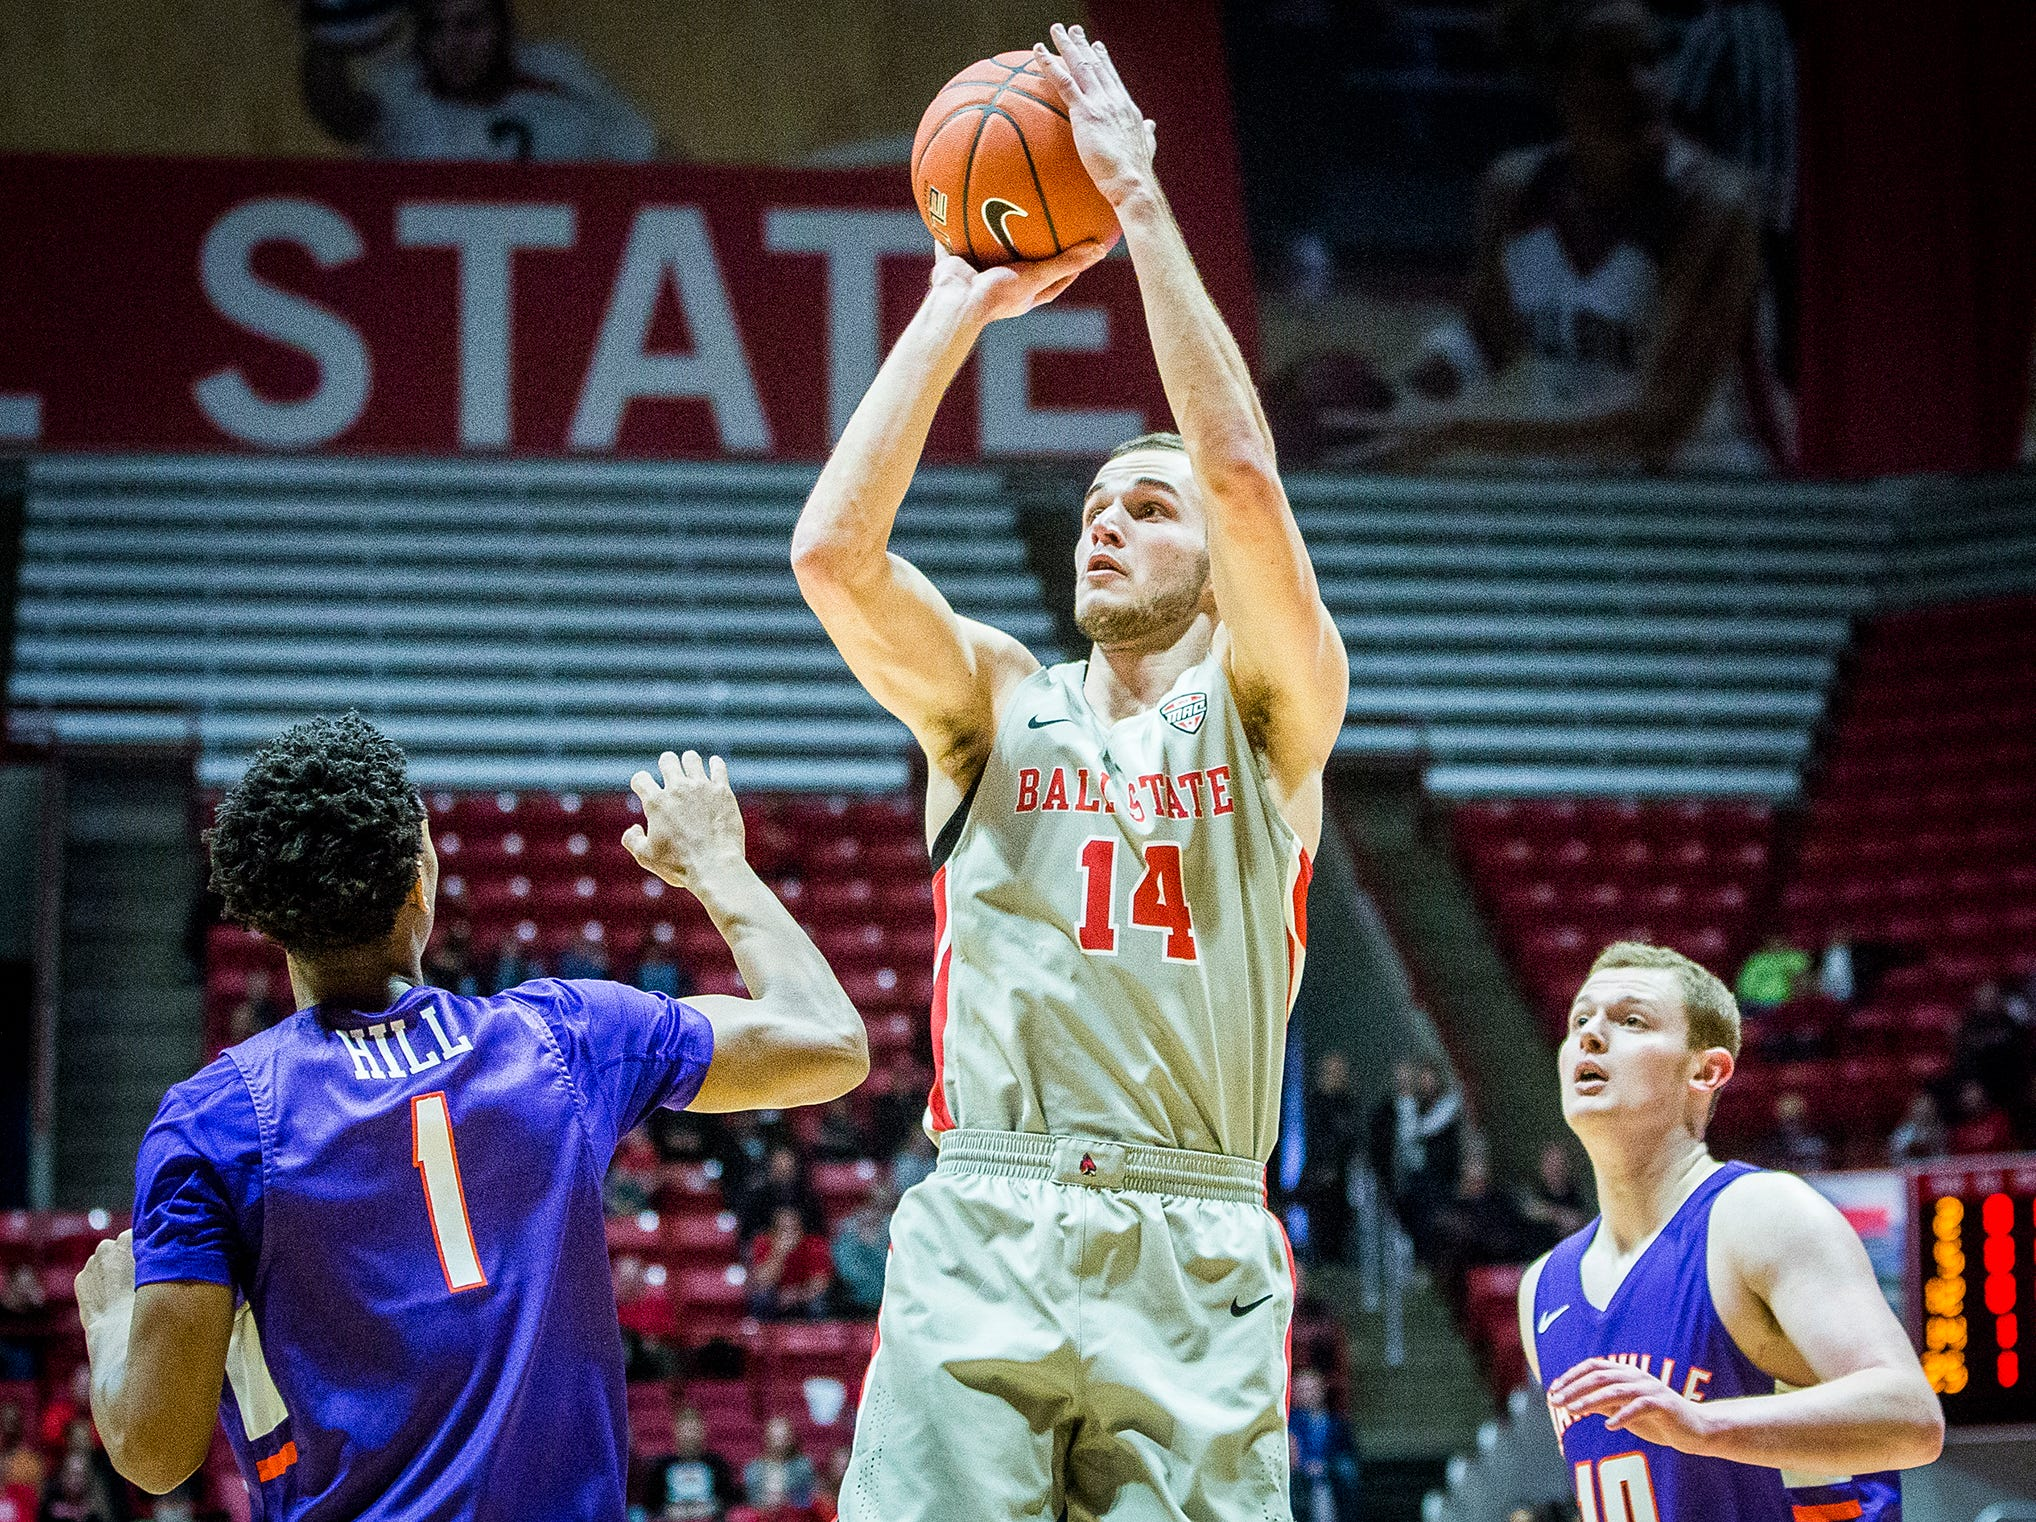 Ball State's Kyle Mallers shoots against Evansville during their game at Worthen Arena Saturday, Nov. 24, 2018.